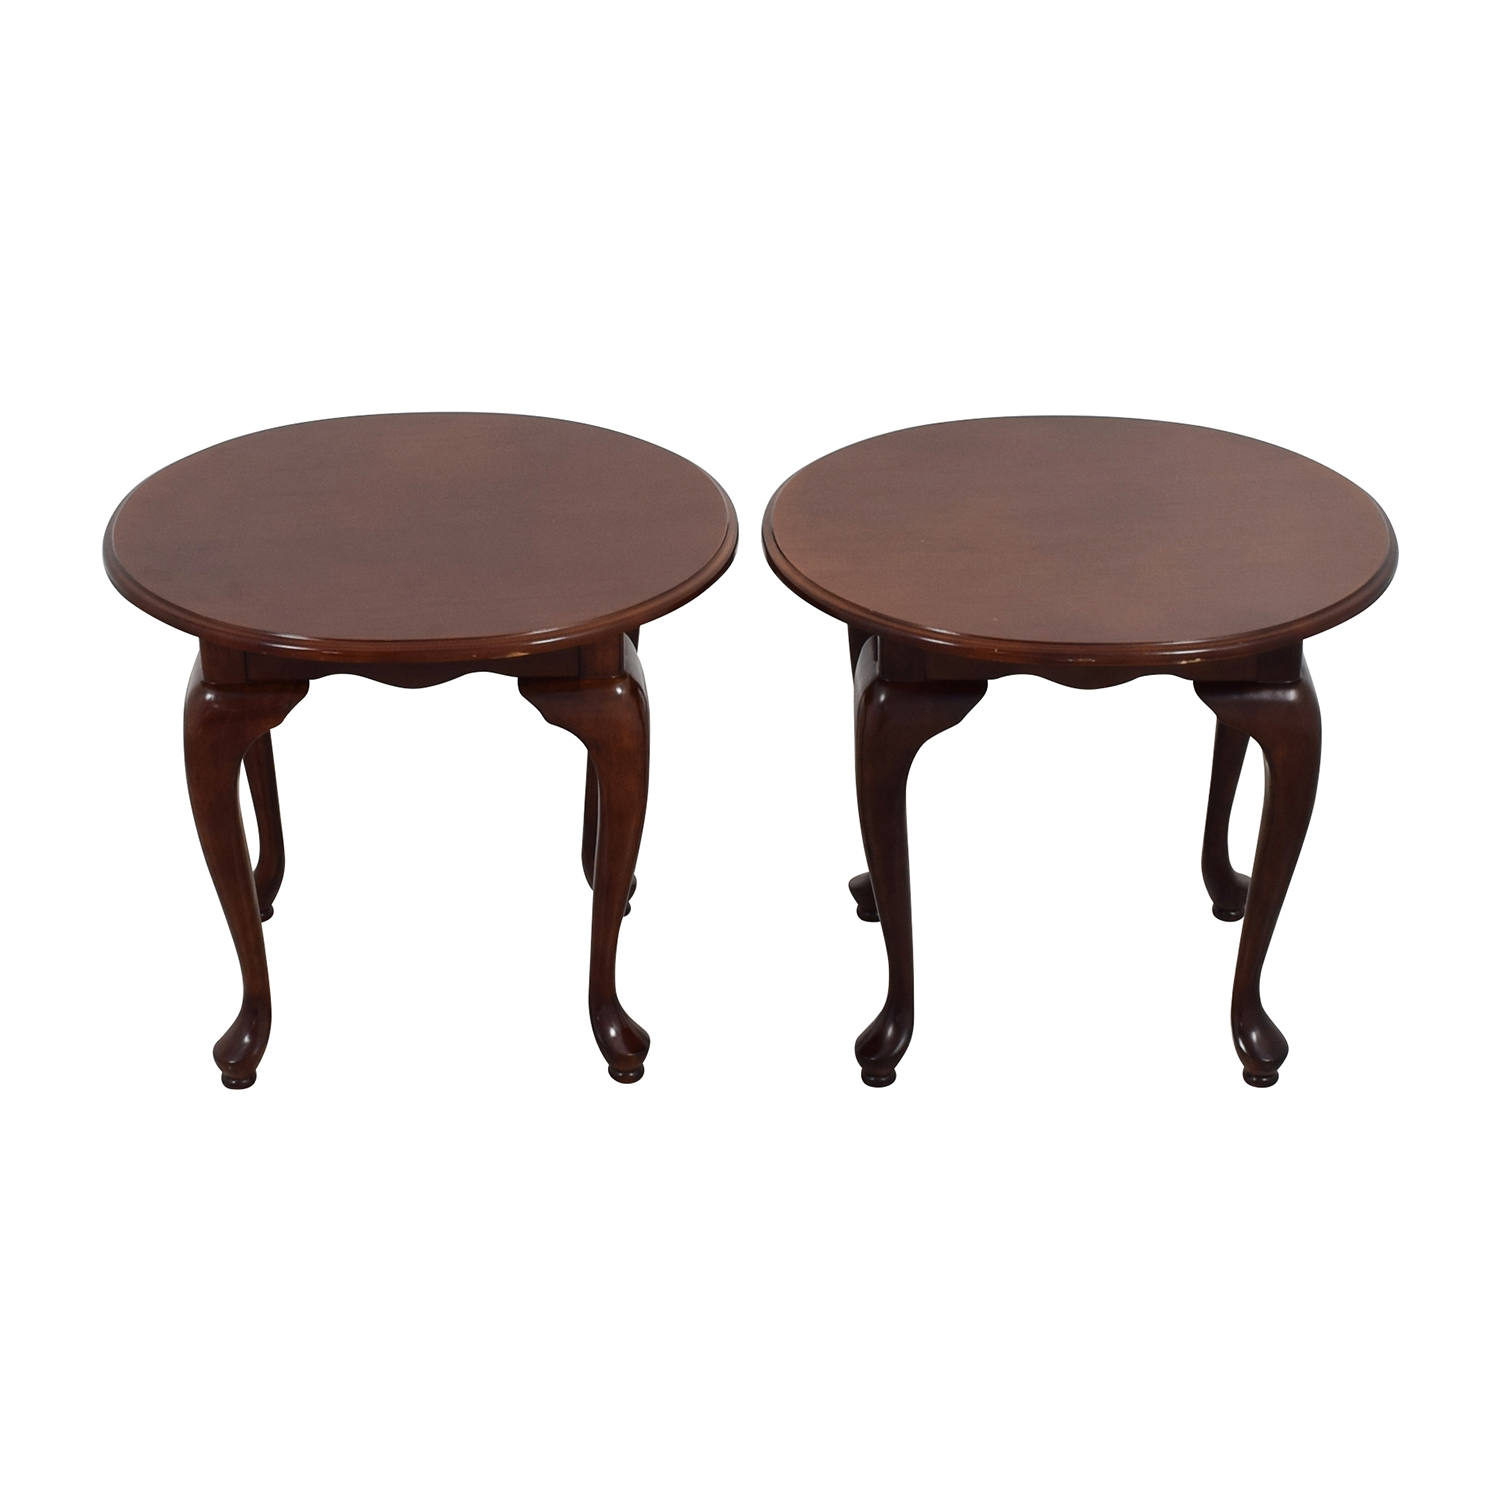 40 off heywood wakefield heywood wakefield single drawer buy ethan allen ethan allen heirloom round lamp tables online geotapseo Image collections